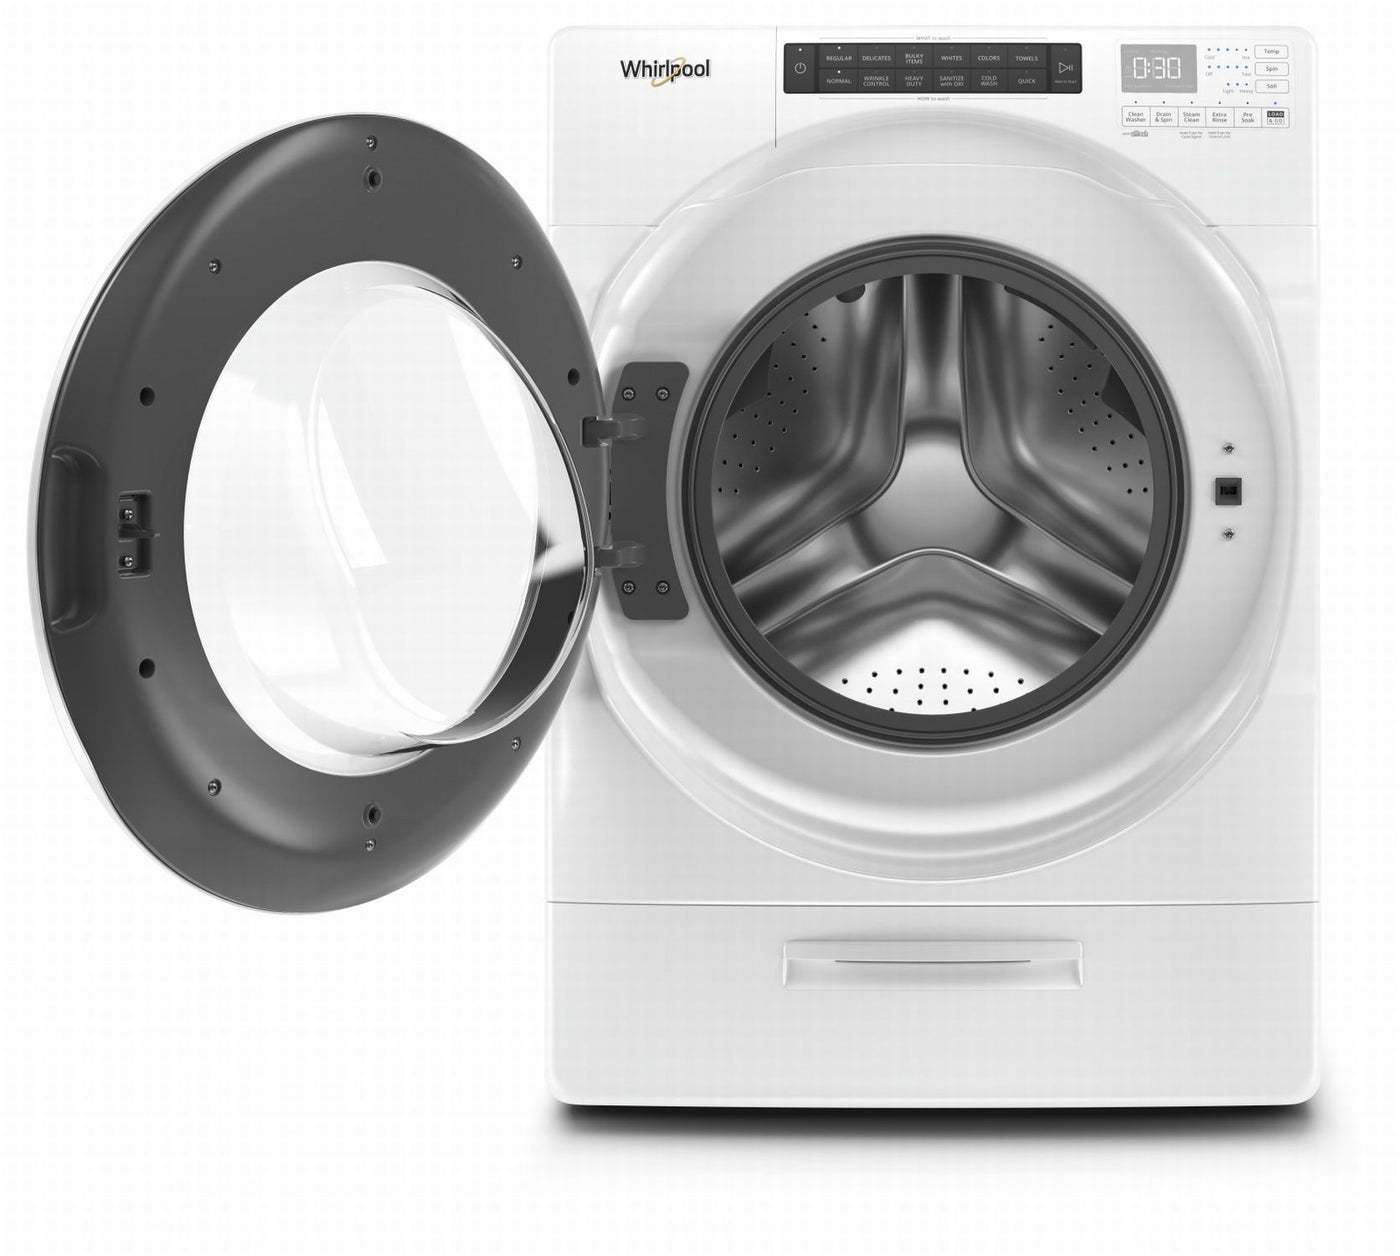 Whirlpool Laveuse 224 Chargement Frontal 5 2 Pi 179 Blanc